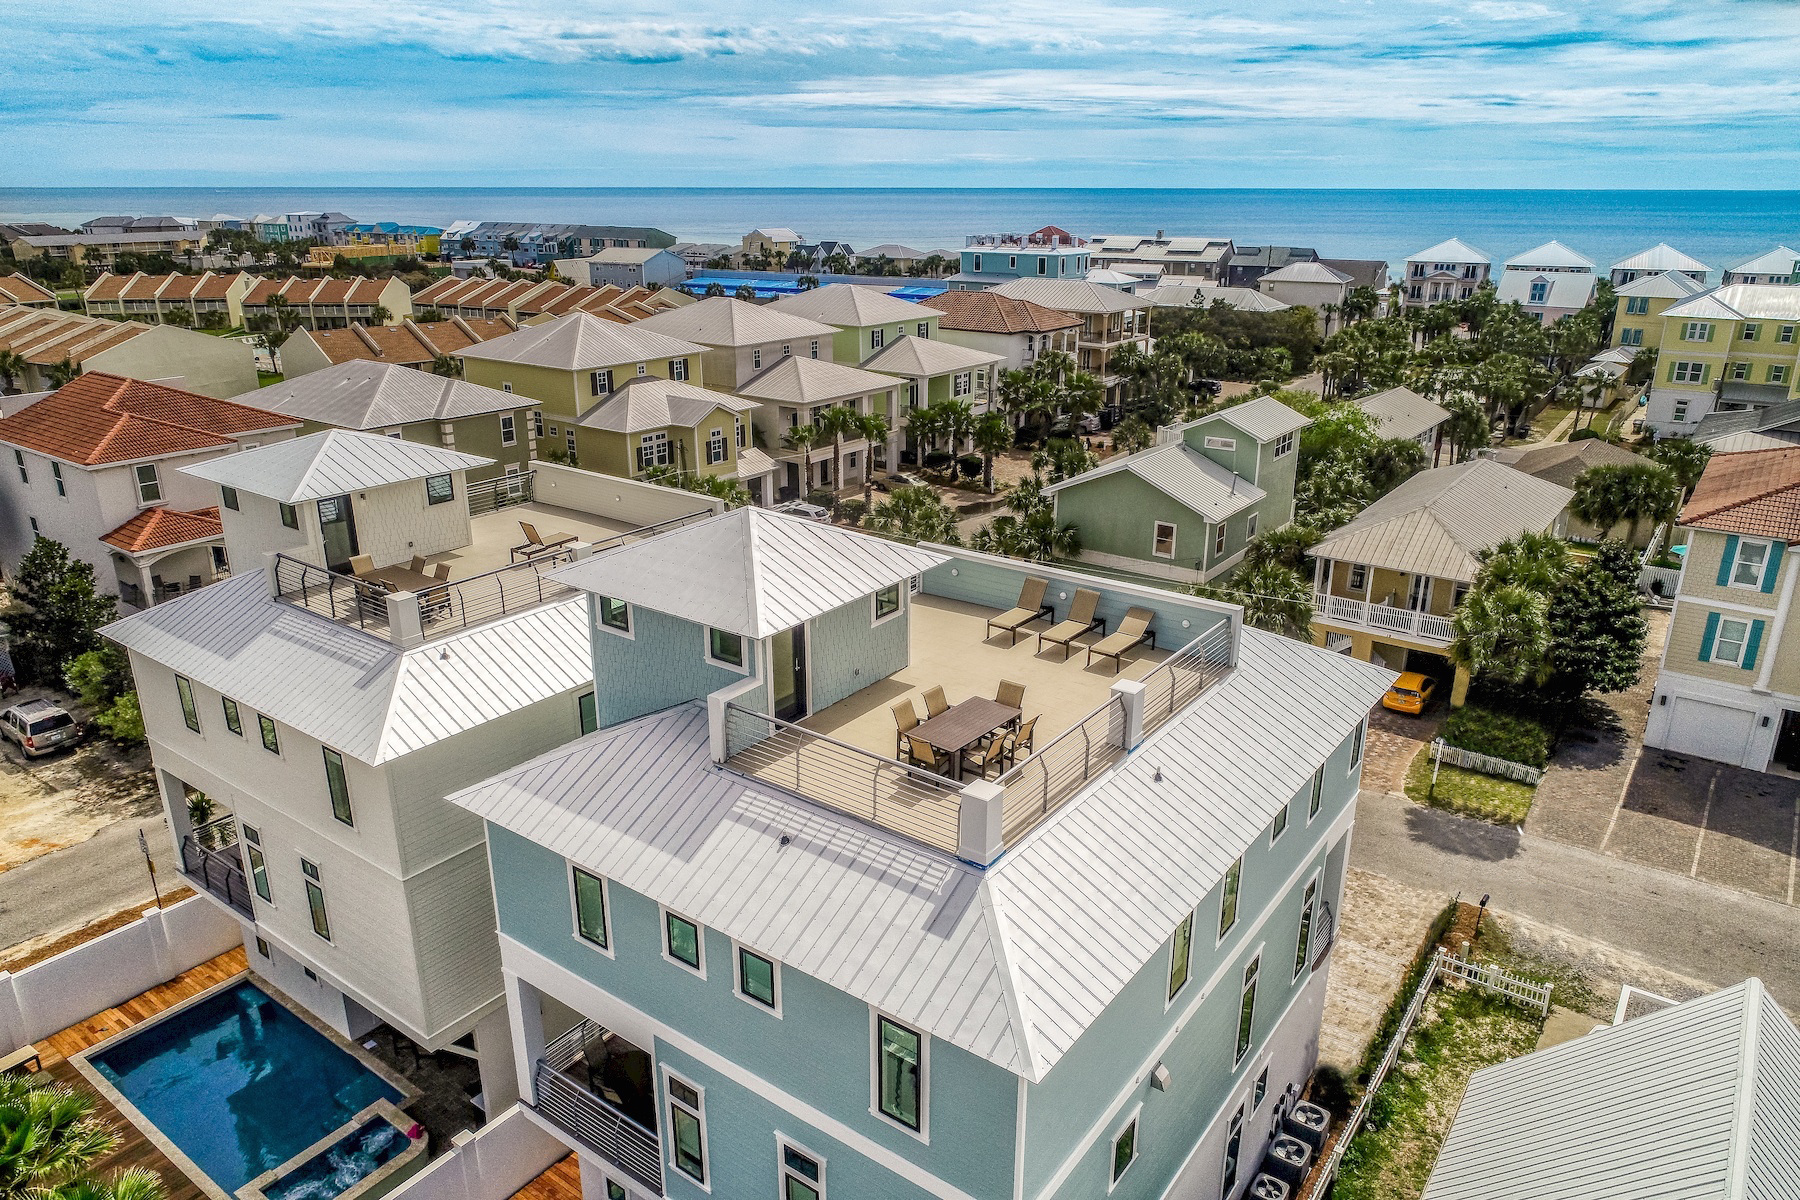 Single Family Homes für Verkauf beim Eight Bedroom Home Newly Constructed in Miramar 20 Sarasota Street, Miramar Beach, Florida 32550 Vereinigte Staaten